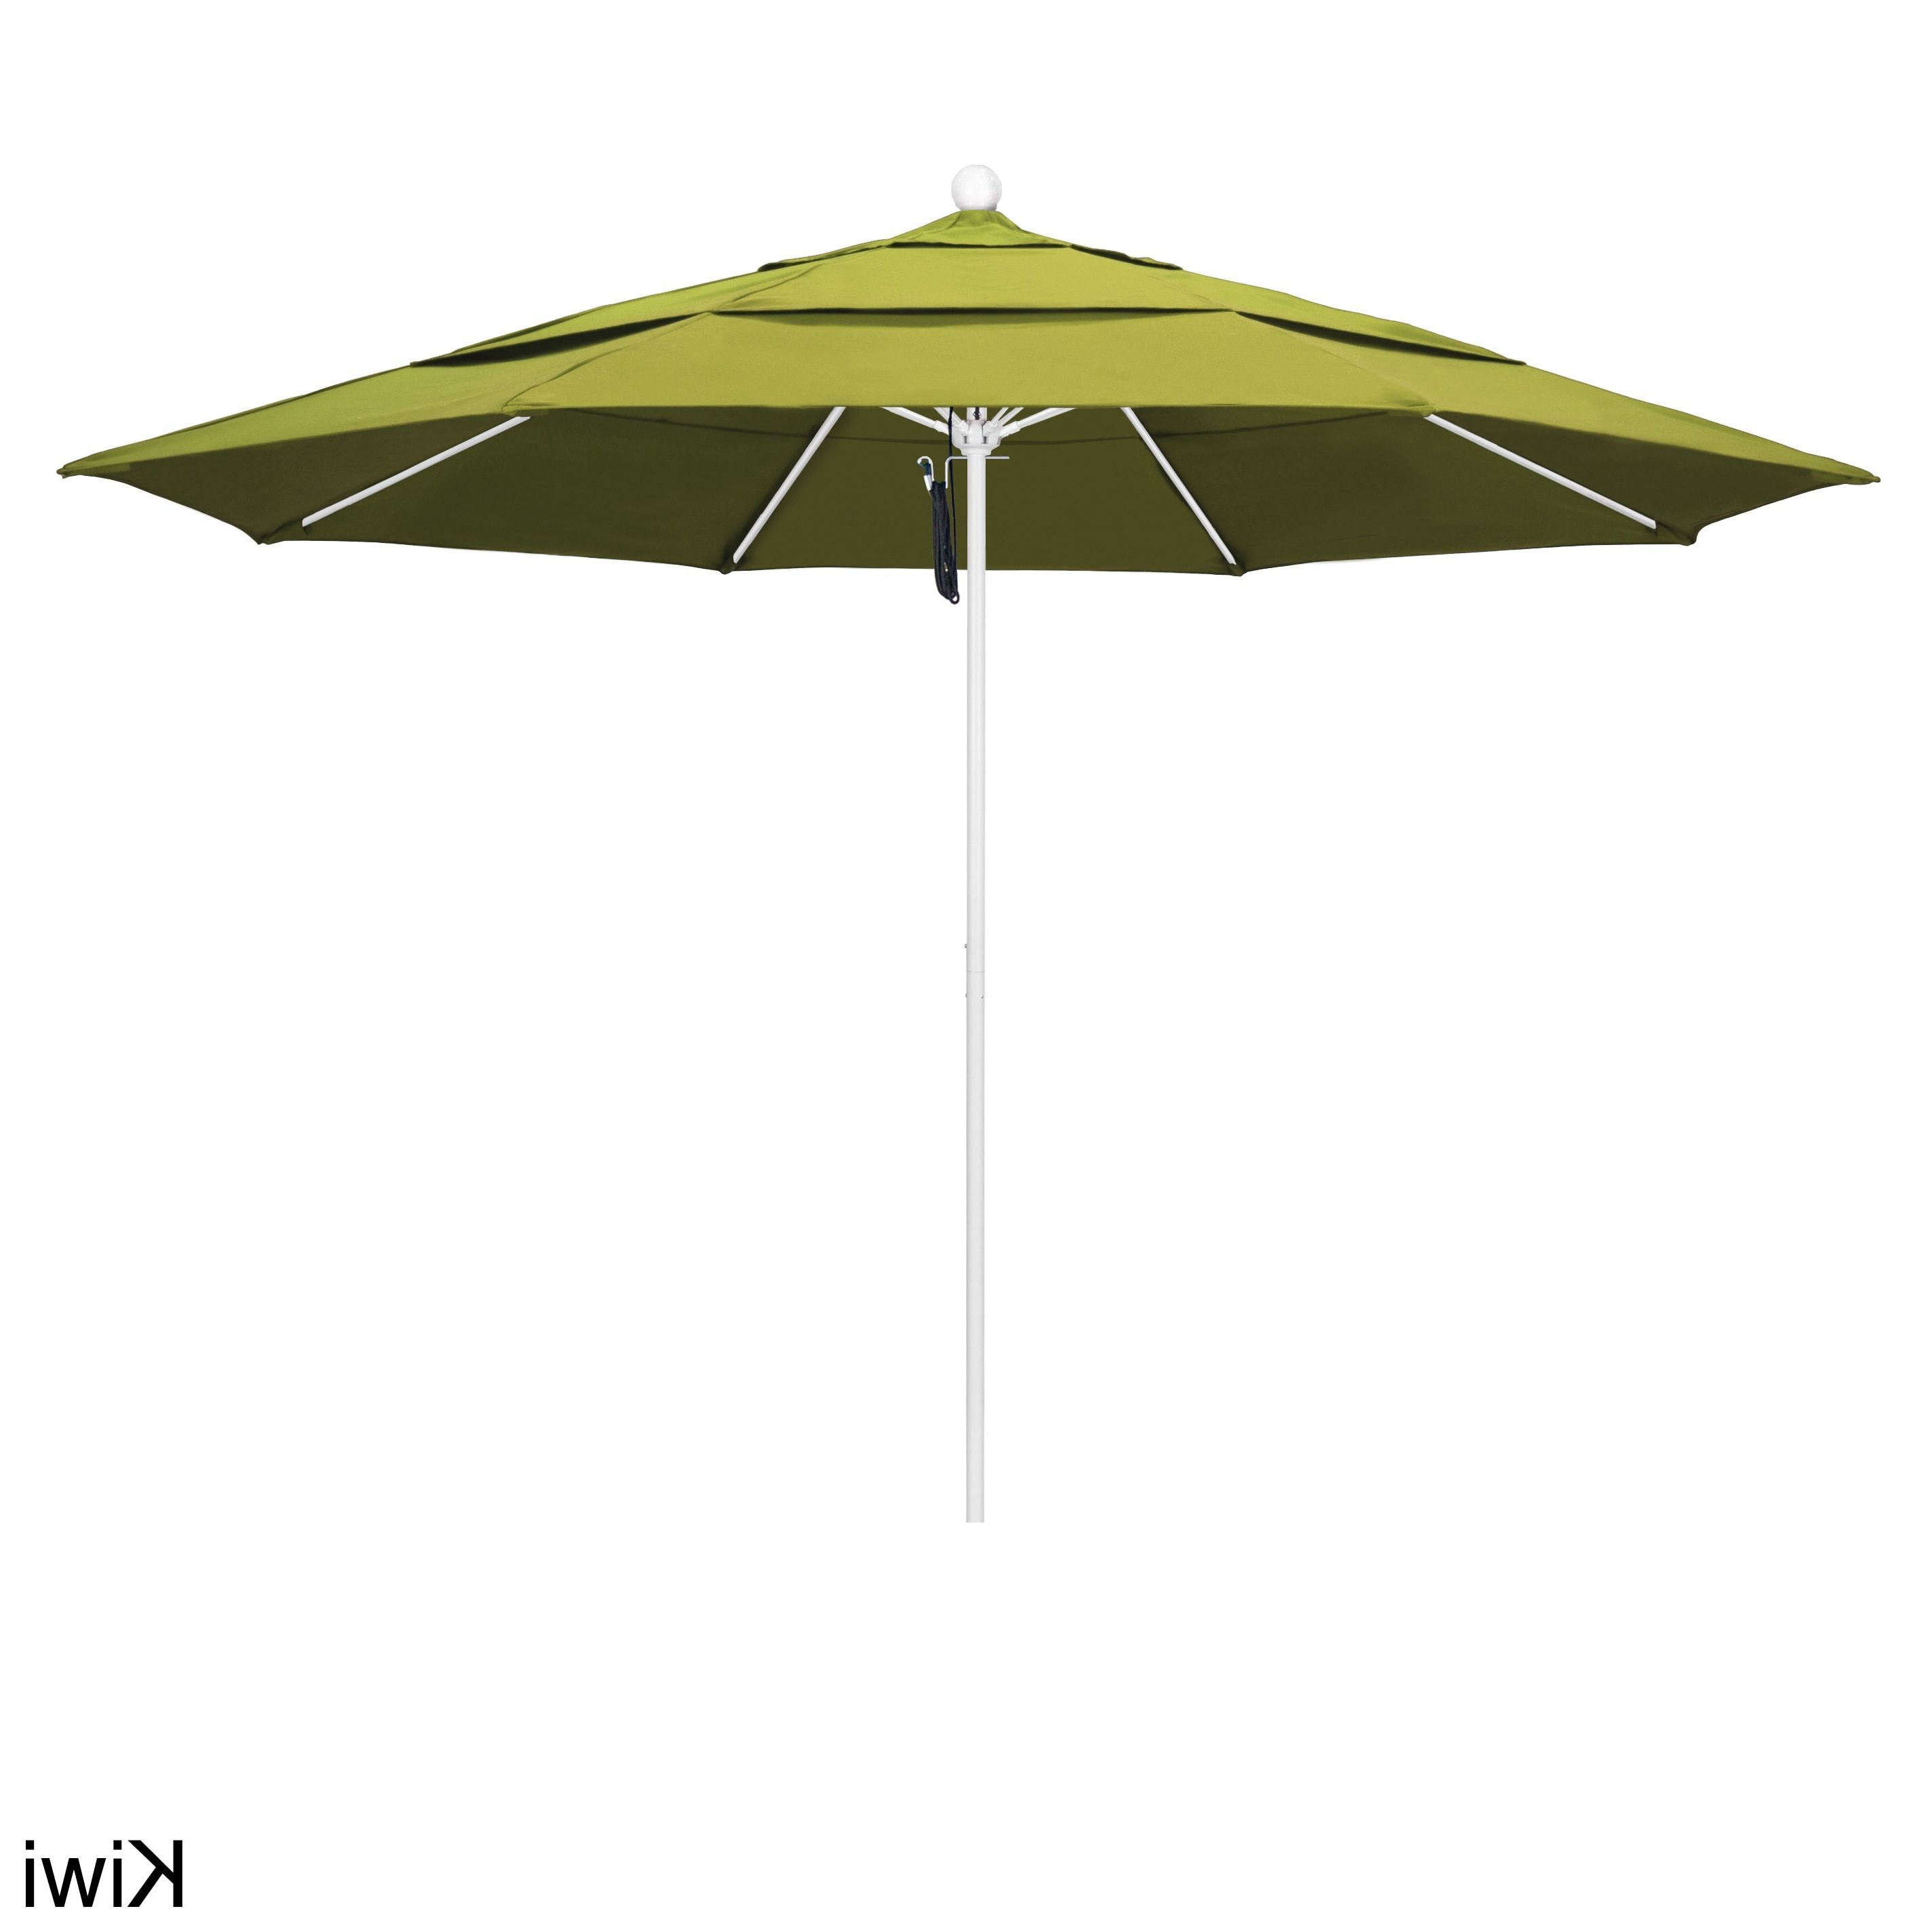 Newest California Umbrella 11' Rd Frame, Fiberglass Rib Market Umbrella Within Mucci Madilyn Market Sunbrella Umbrellas (Gallery 13 of 20)